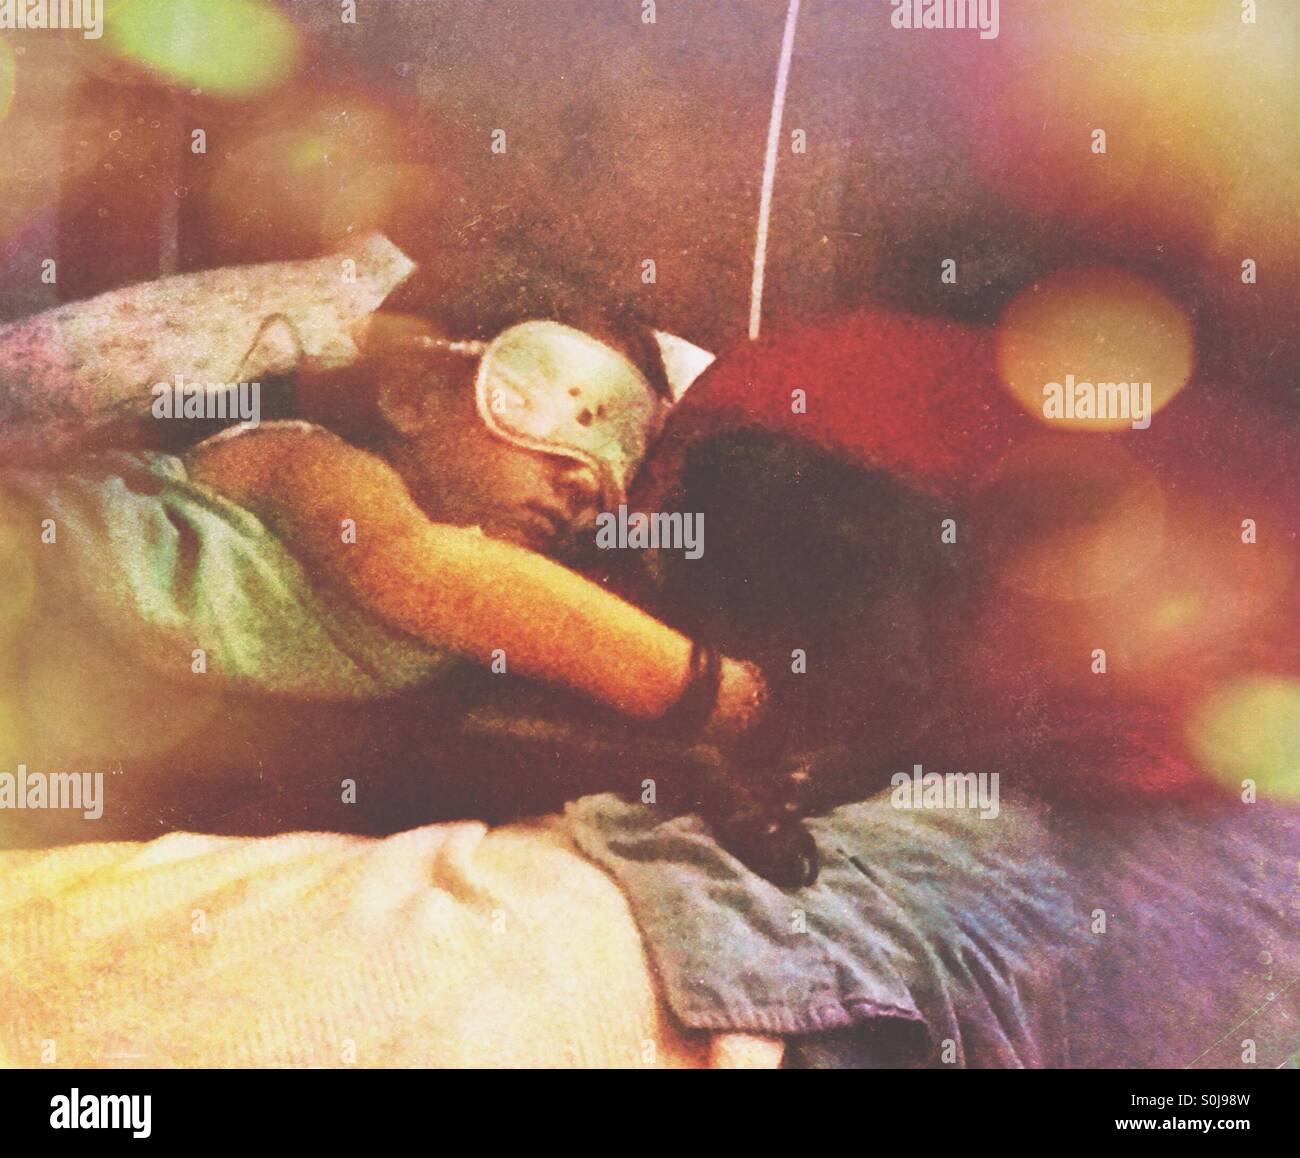 A little girl sleeping with her dog. - Stock Image